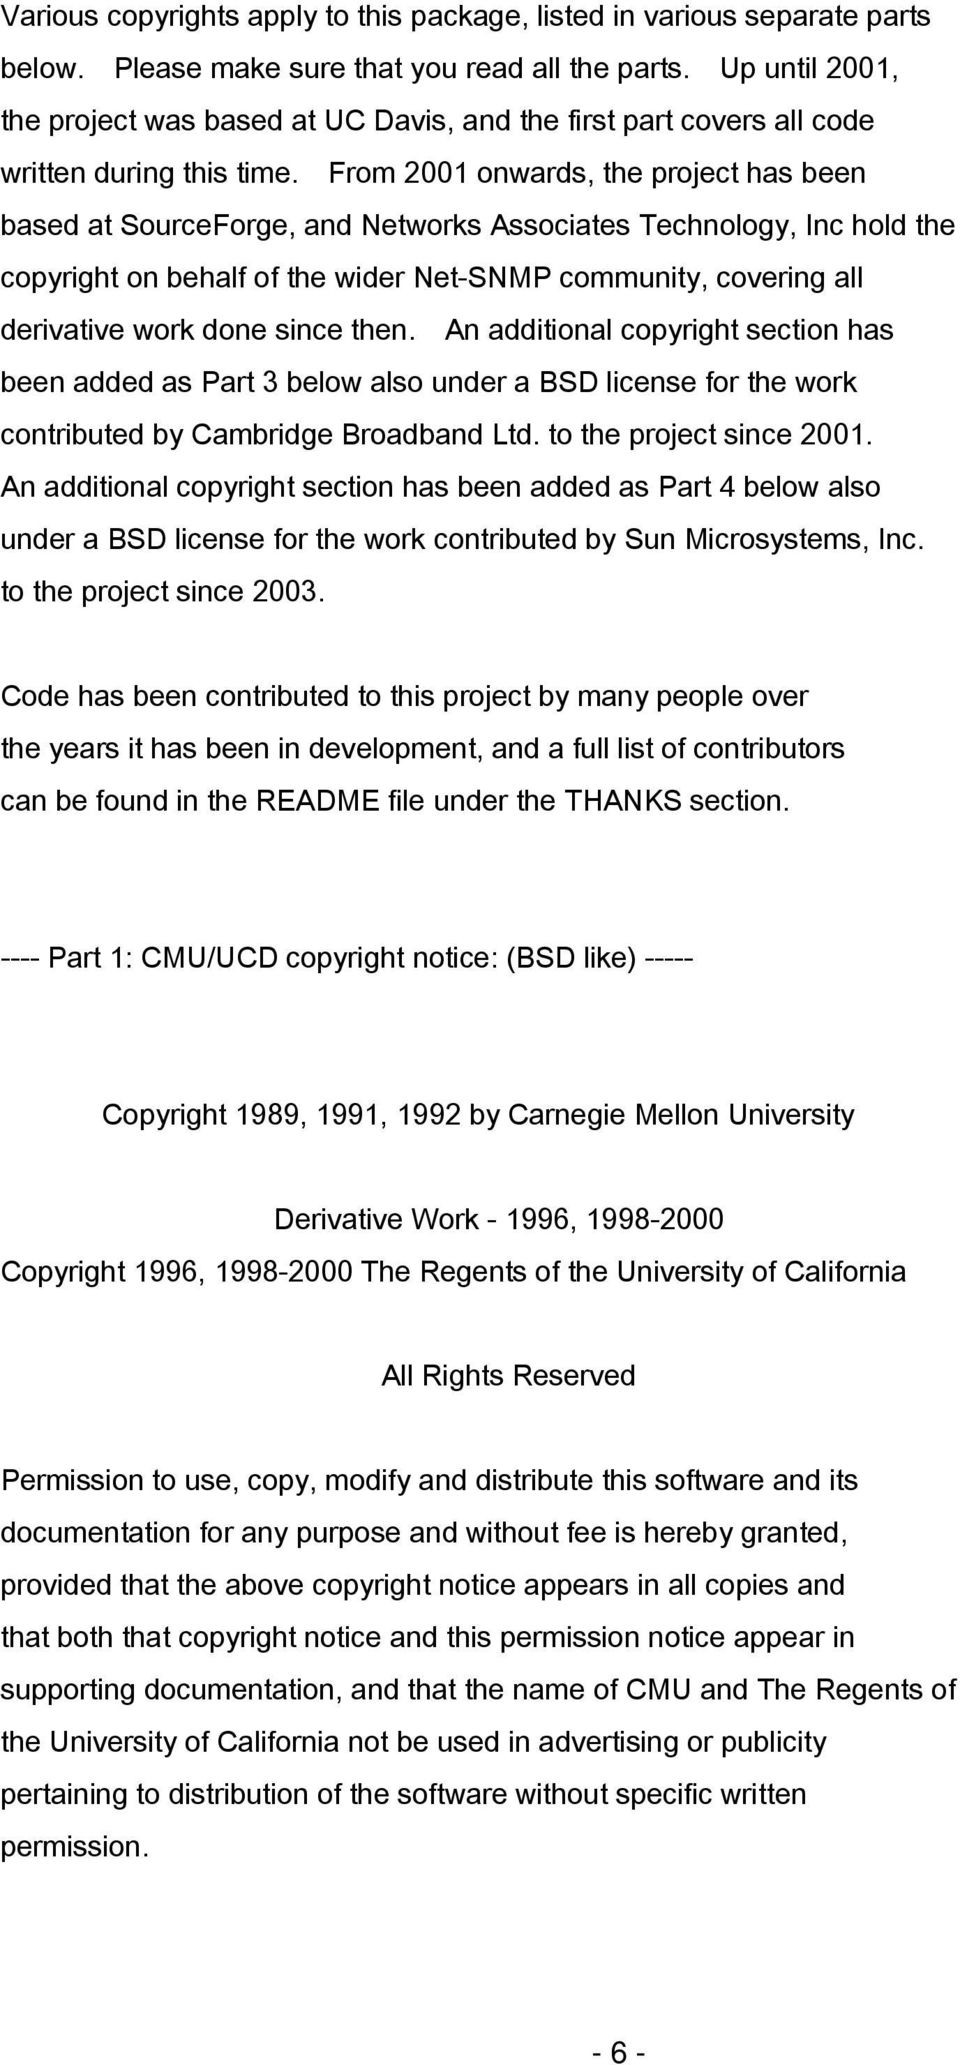 From 2001 onwards, the project has been based at SourceForge, and Networks Associates Technology, Inc hold the copyright on behalf of the wider Net-SNMP community, covering all derivative work done